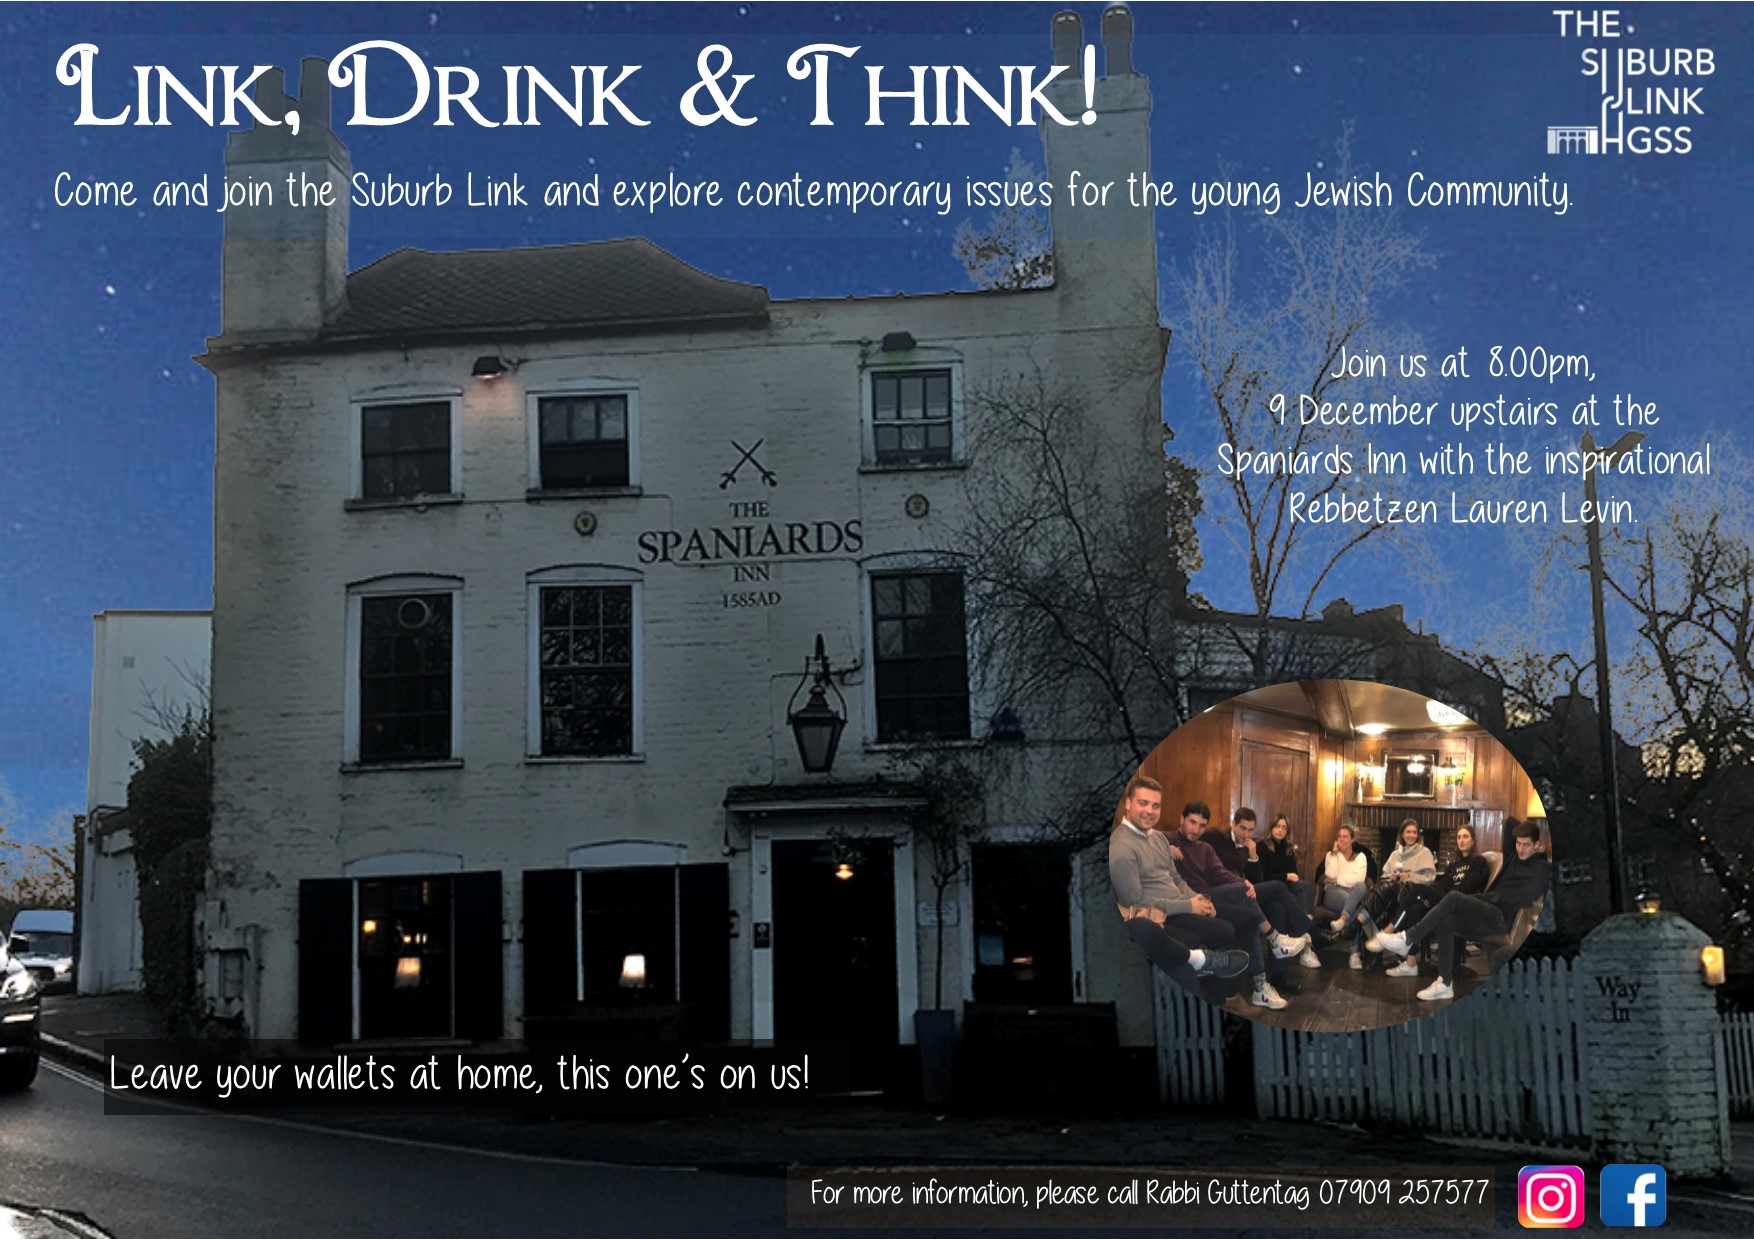 Link, Drink & Think @ HGSS